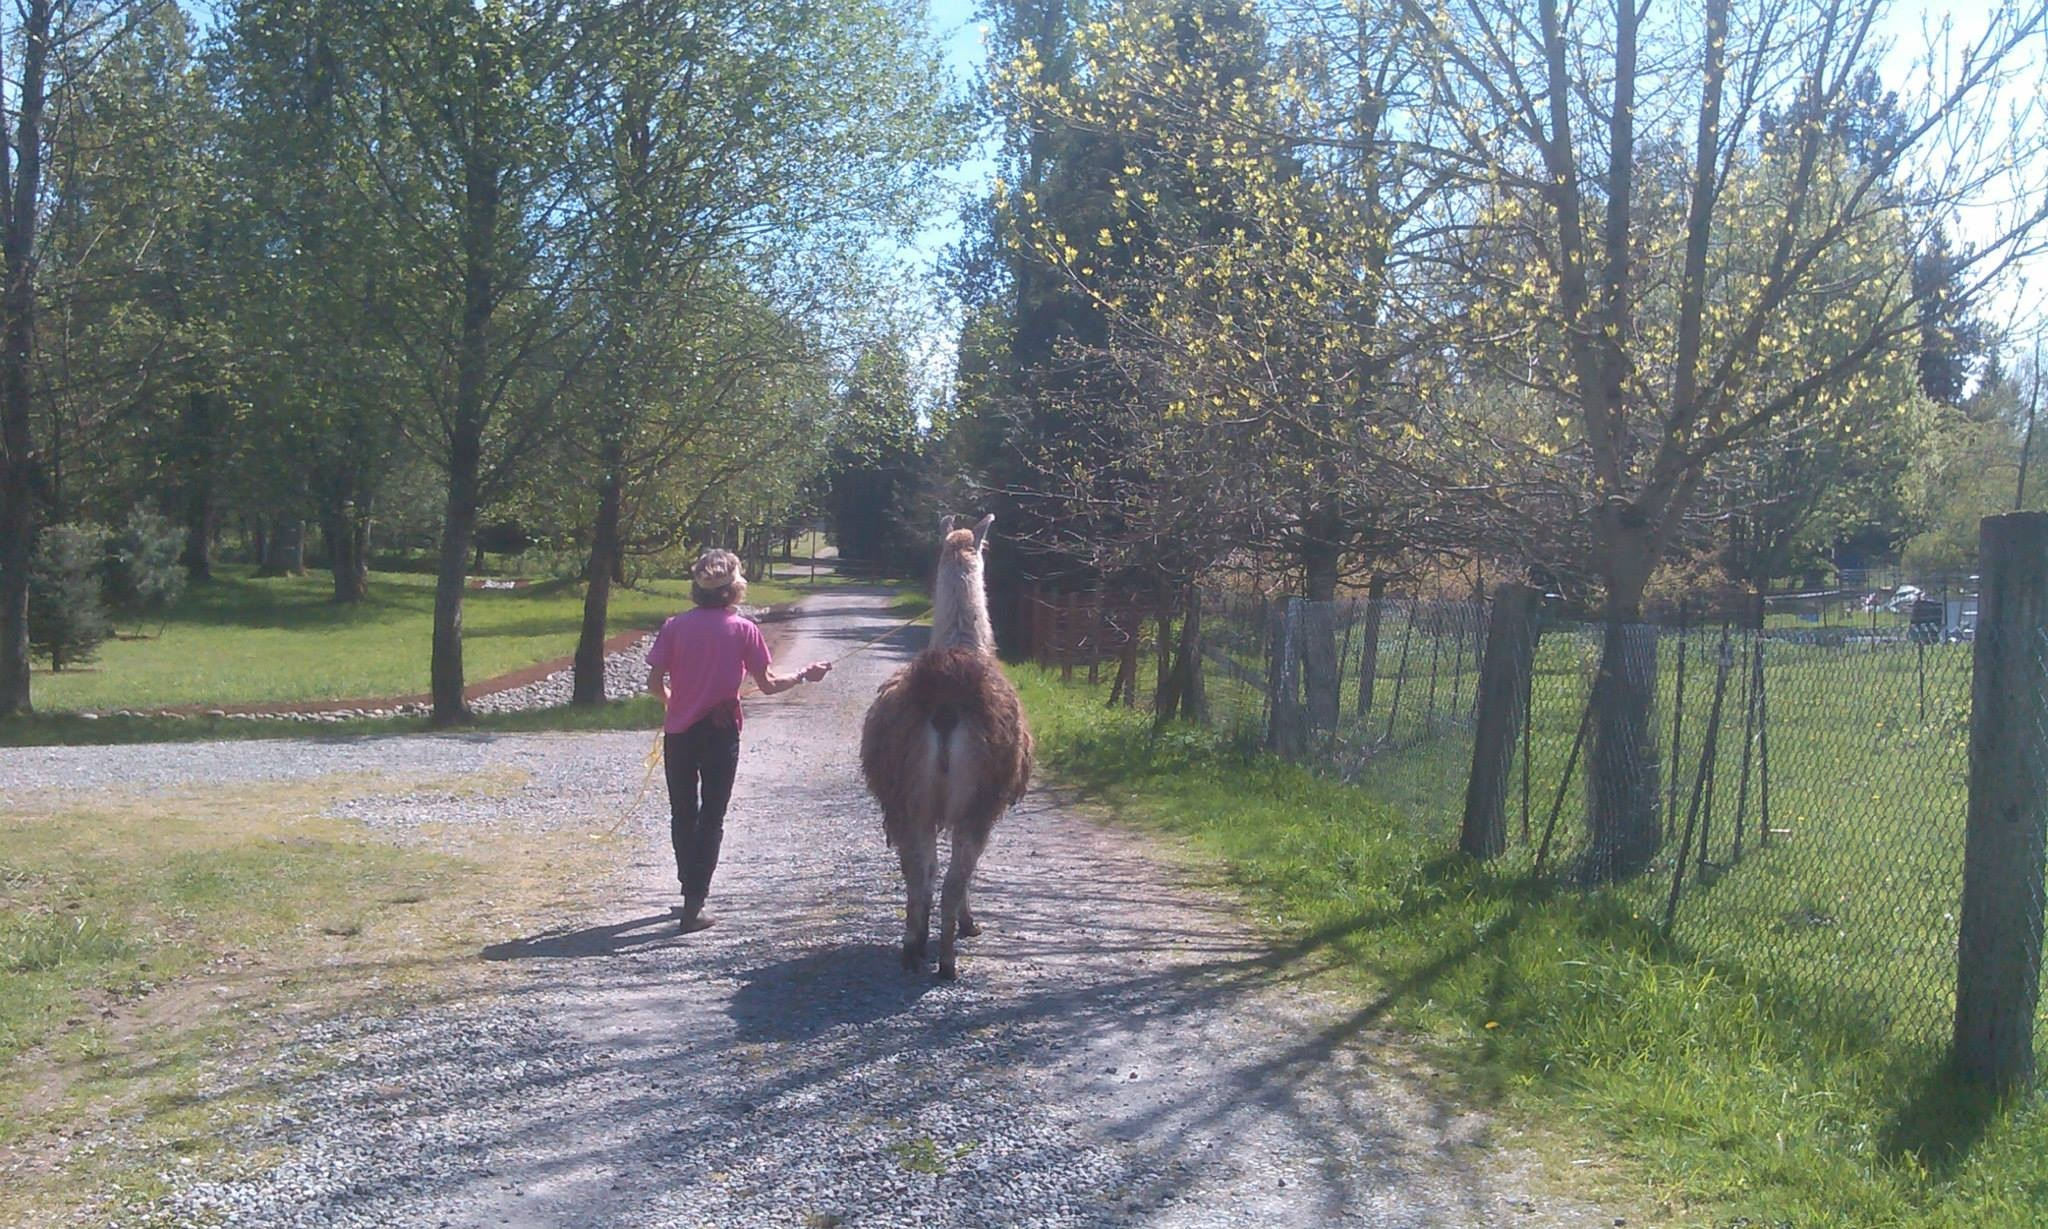 The victory walk for Roman the llama....from the slaughterhouse, to the rescue to a new lifelong home